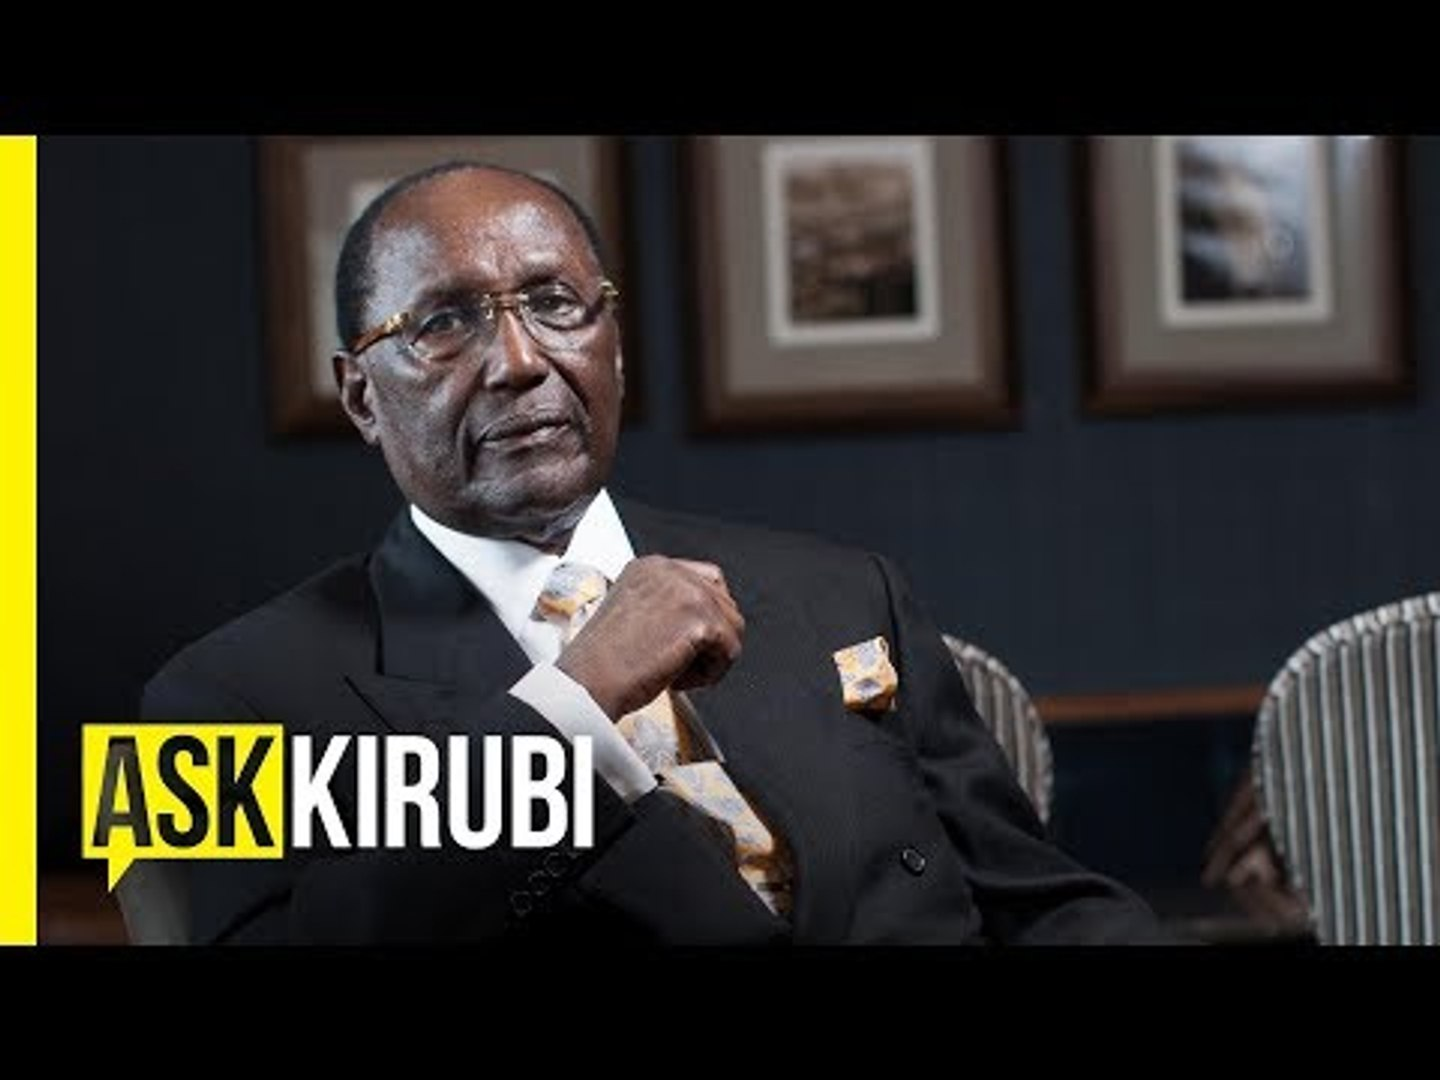 #AskKirubi: Buy Kenya, Build Kenya